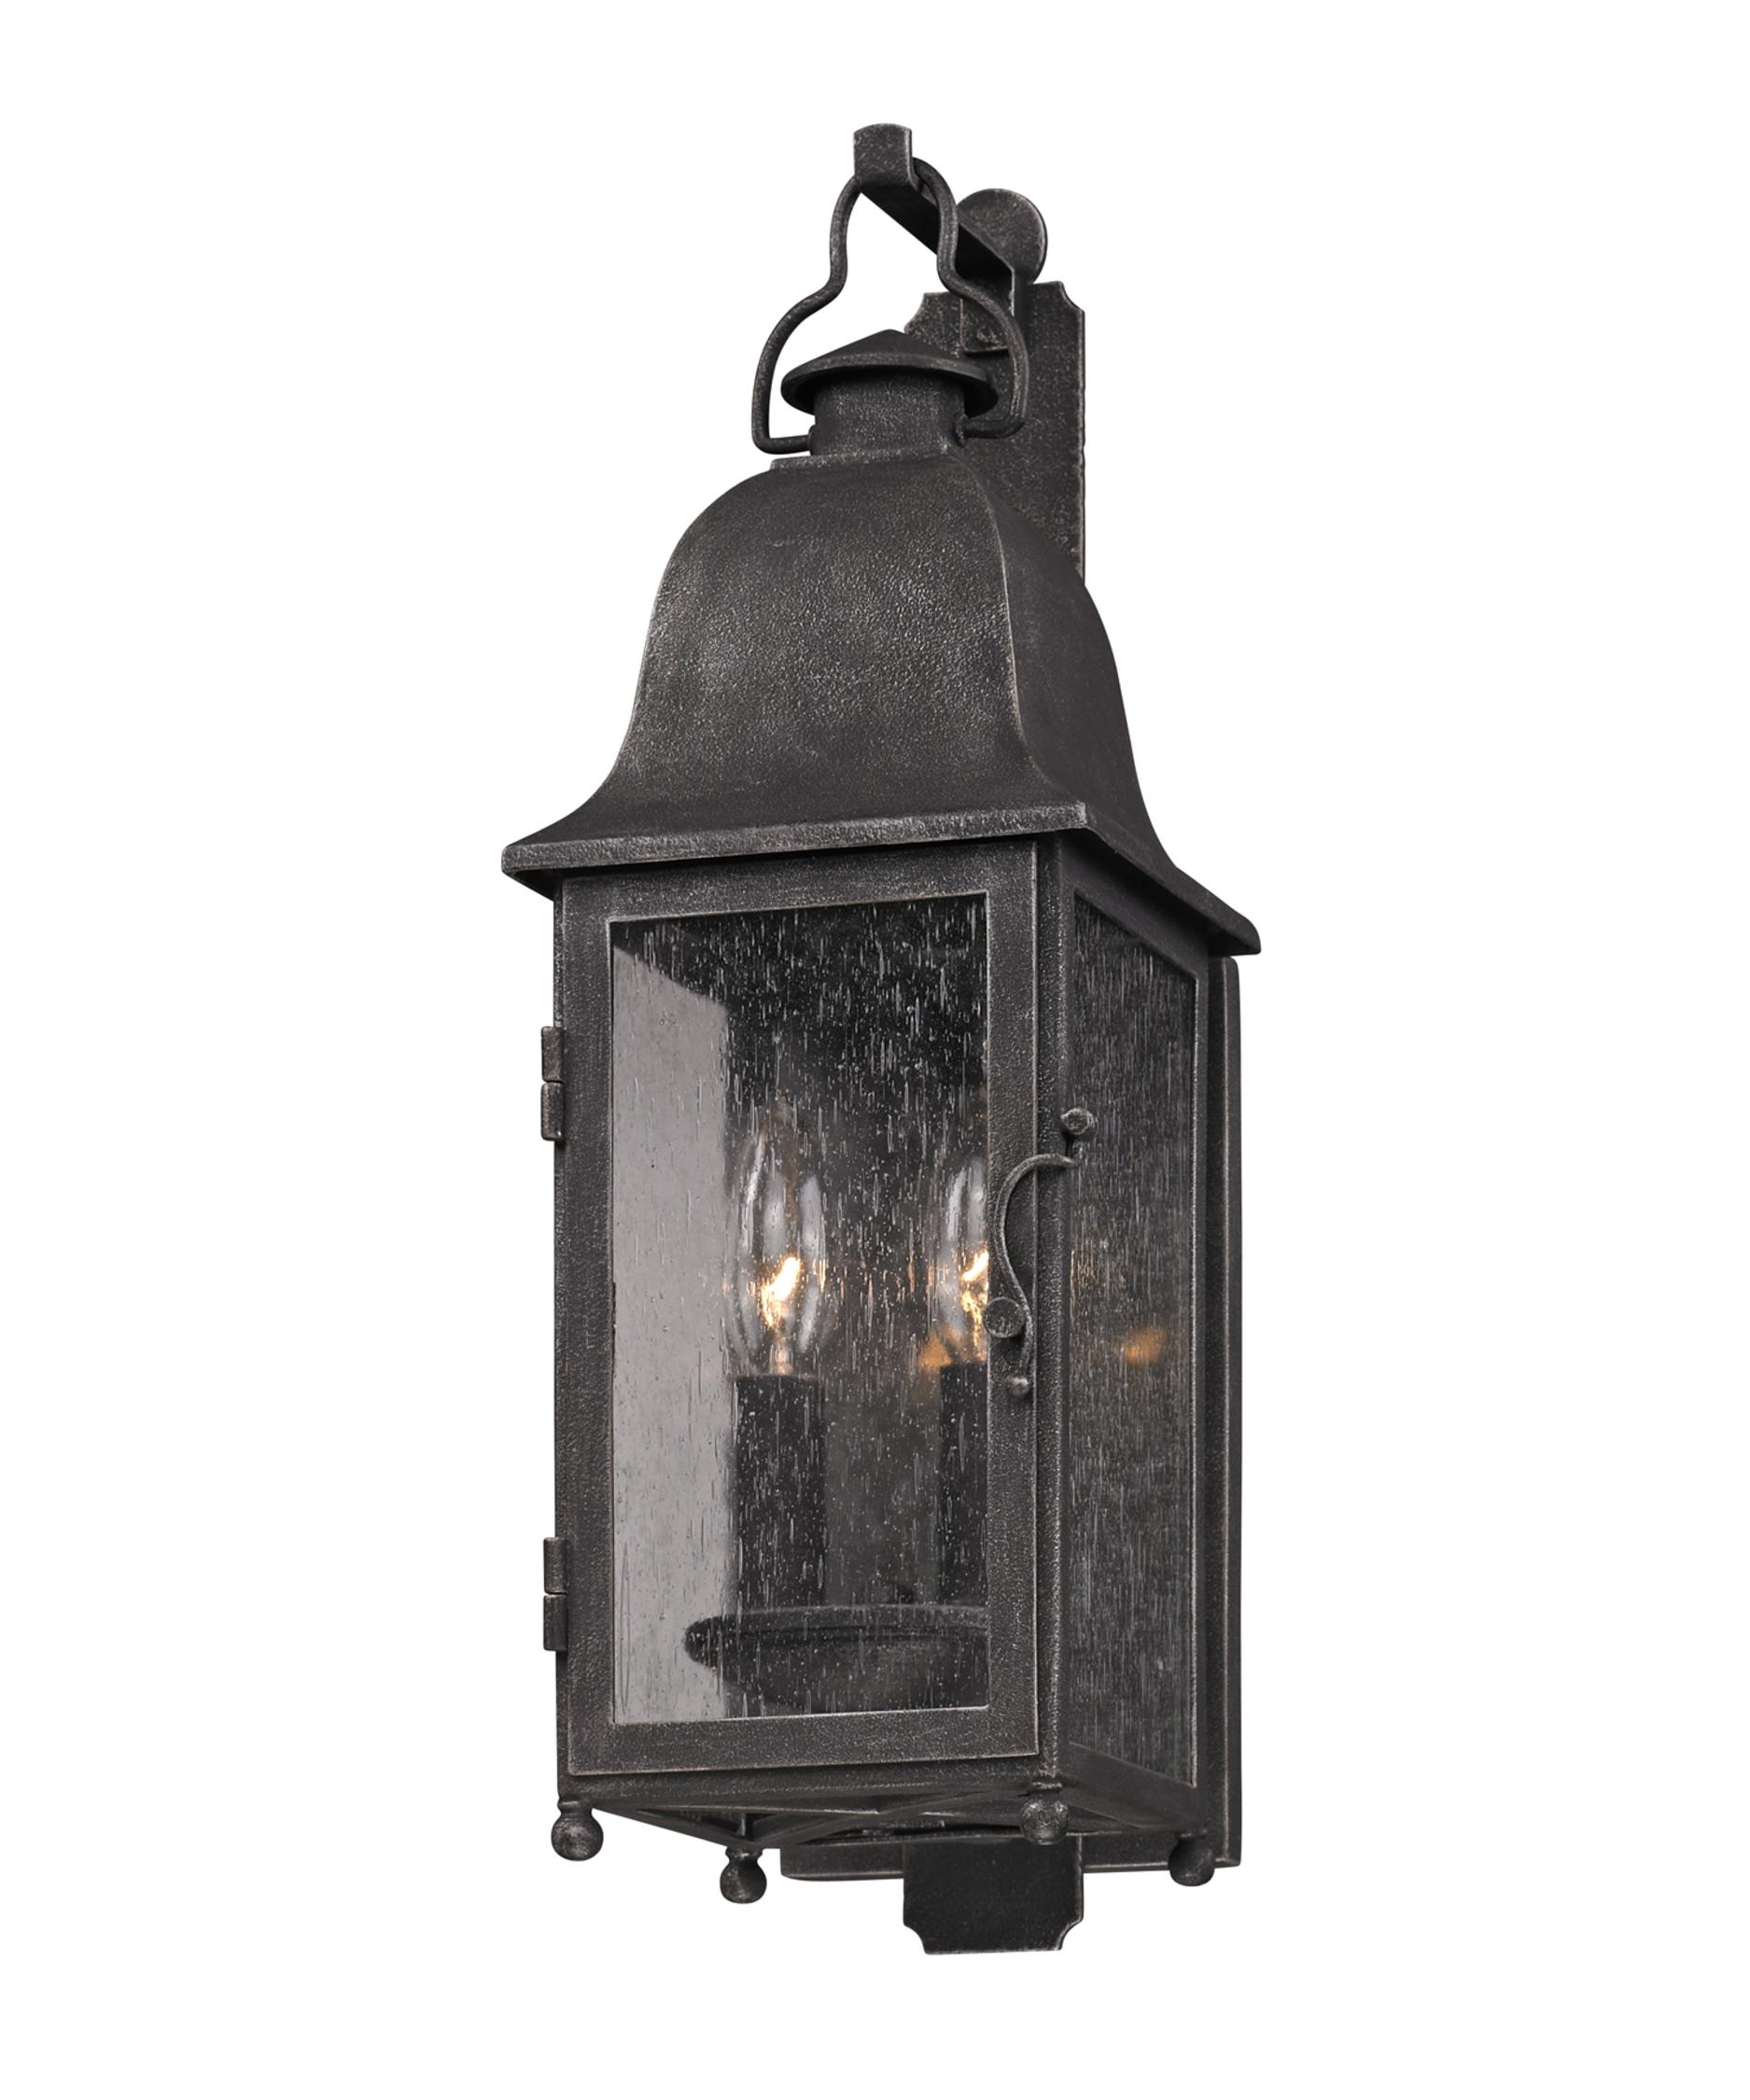 Troy Lighting Larchmont Collection | Capitol Lighting 1800lighting.com